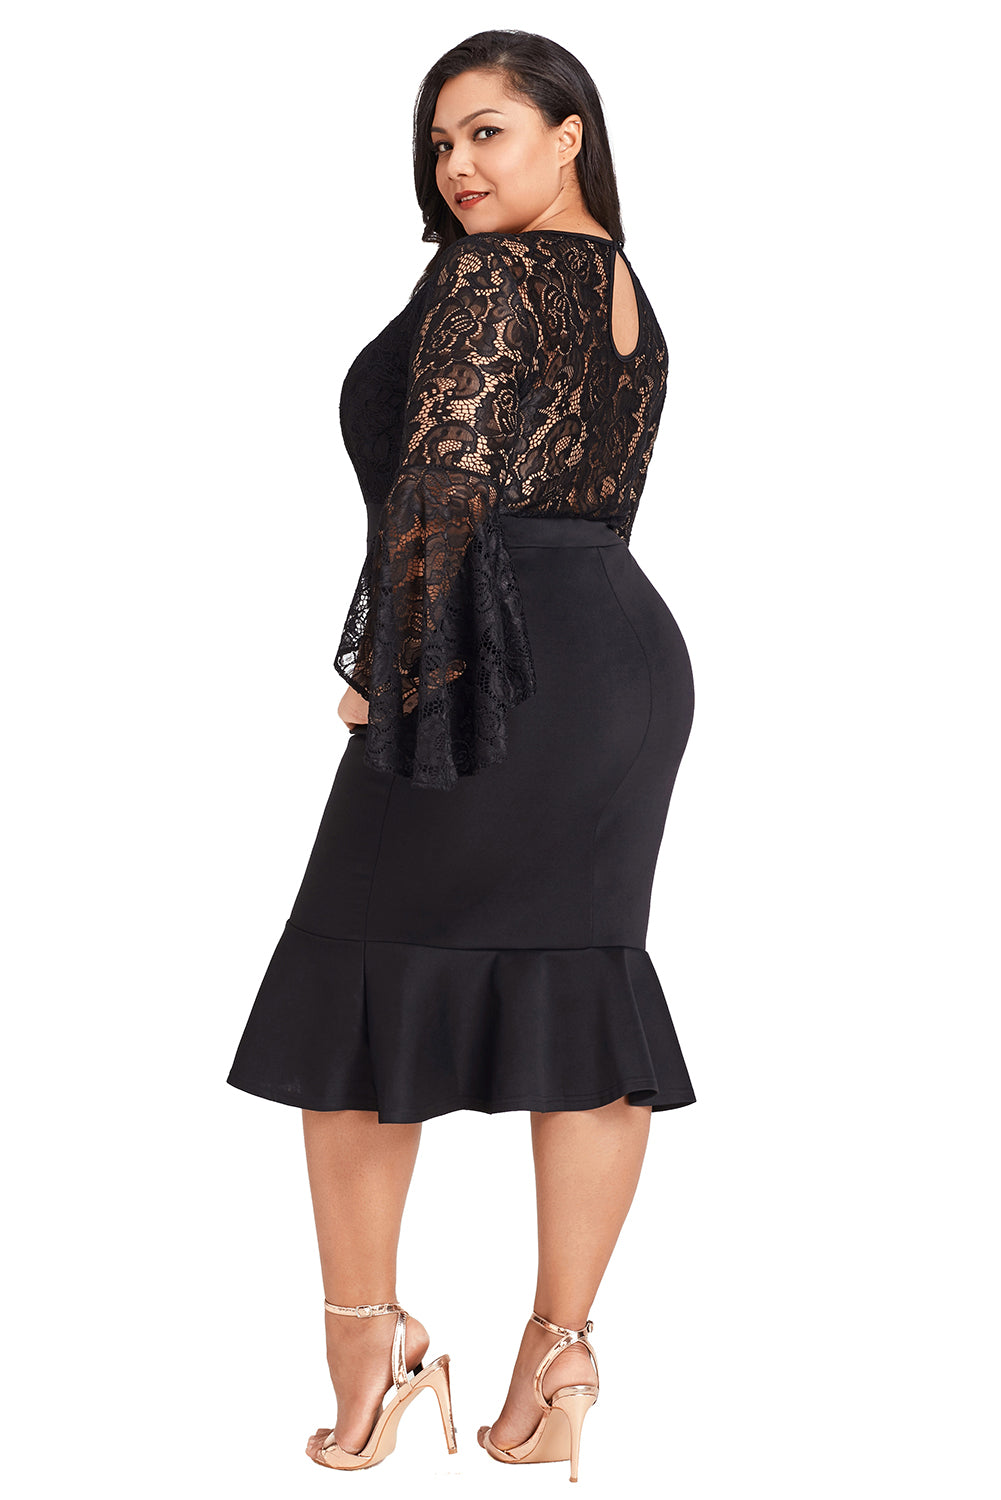 0a020edae7 Black Plus Size Lace Bell Sleeve Mermaid Bodycon Dress LAVELIQ - Laveliqus